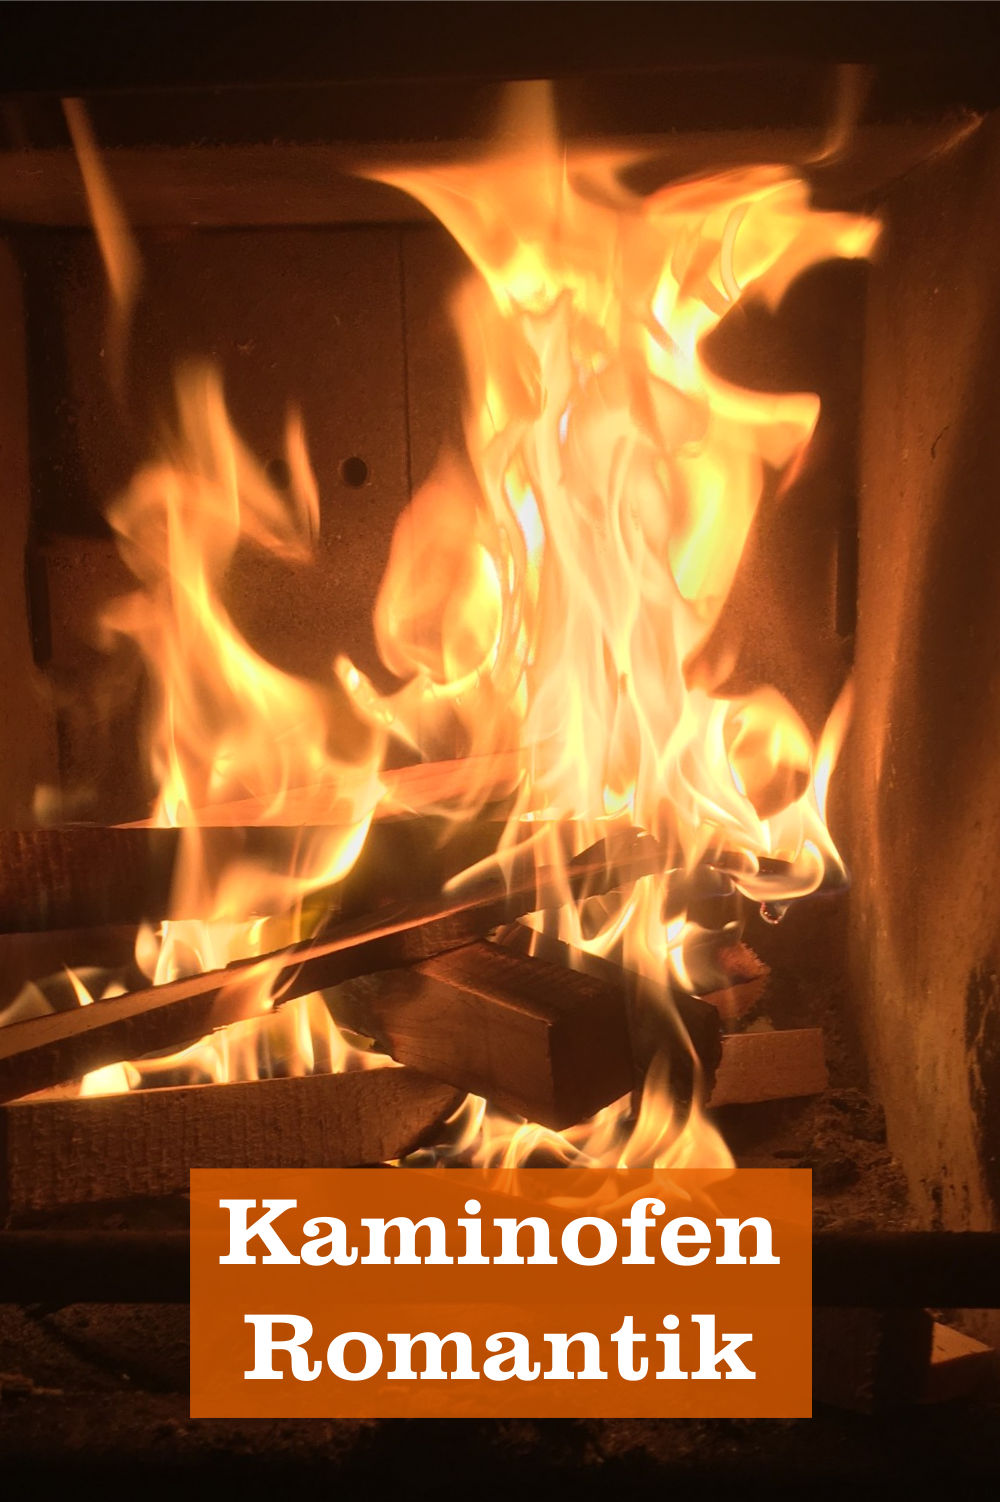 Kaminofen Romantik